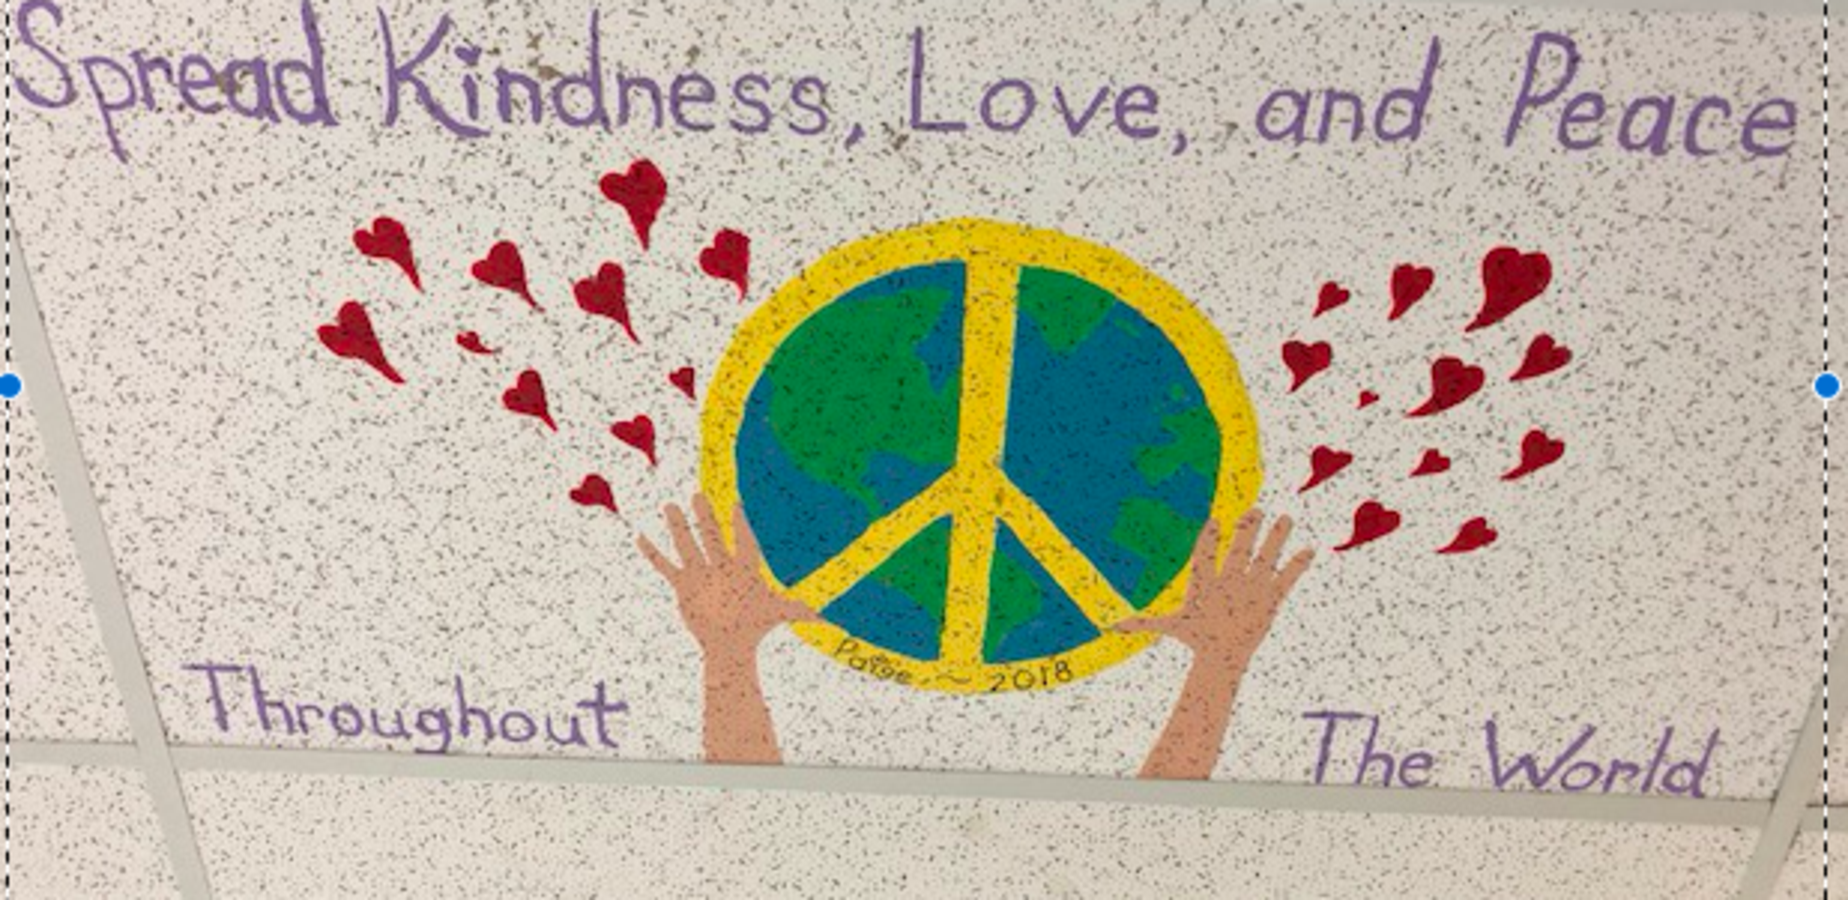 Kindness, Love and Peace